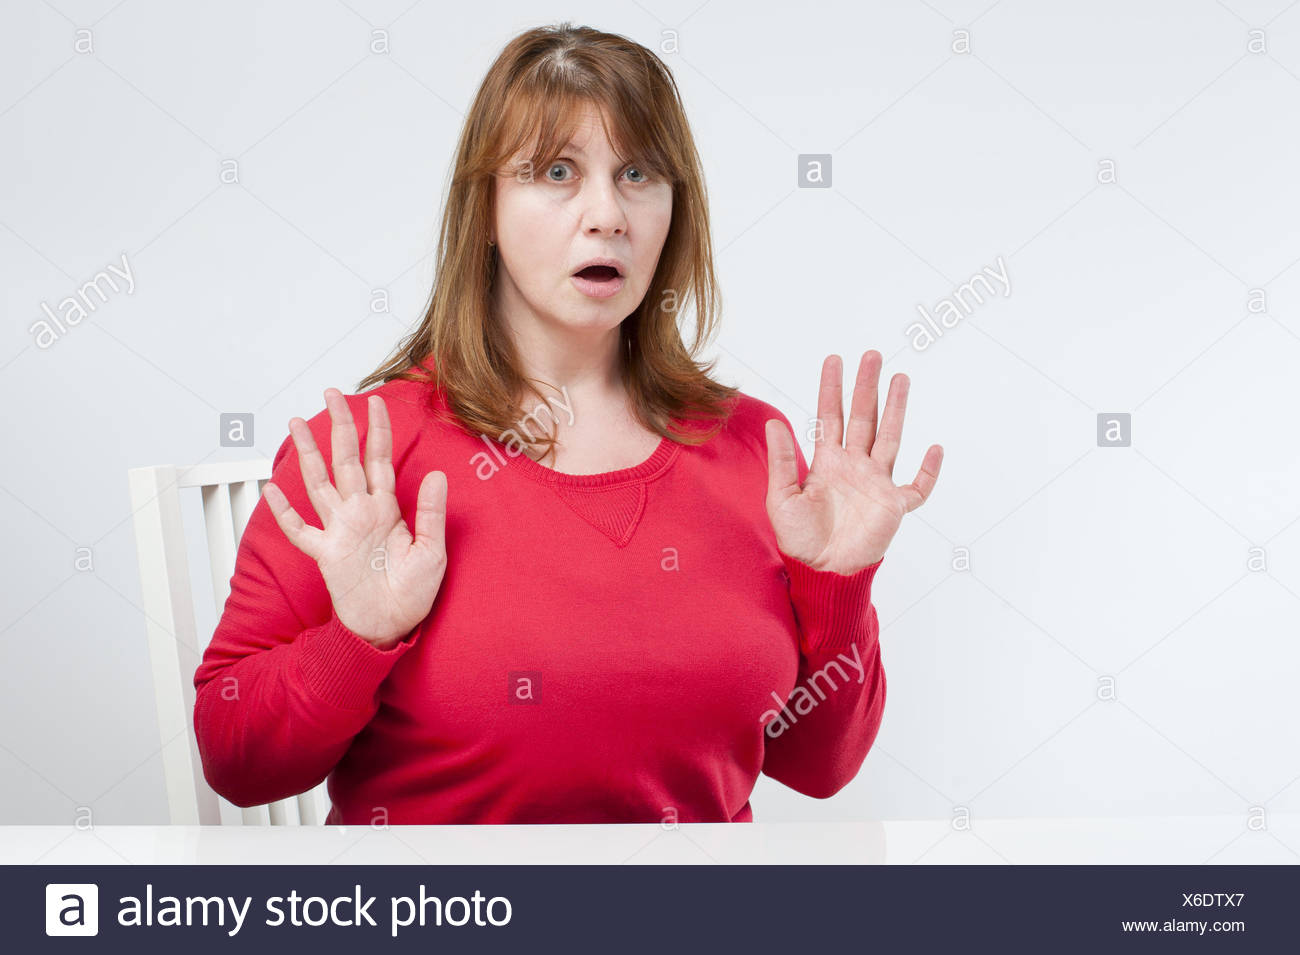 Frightened middle-aged woman. - Stock Image